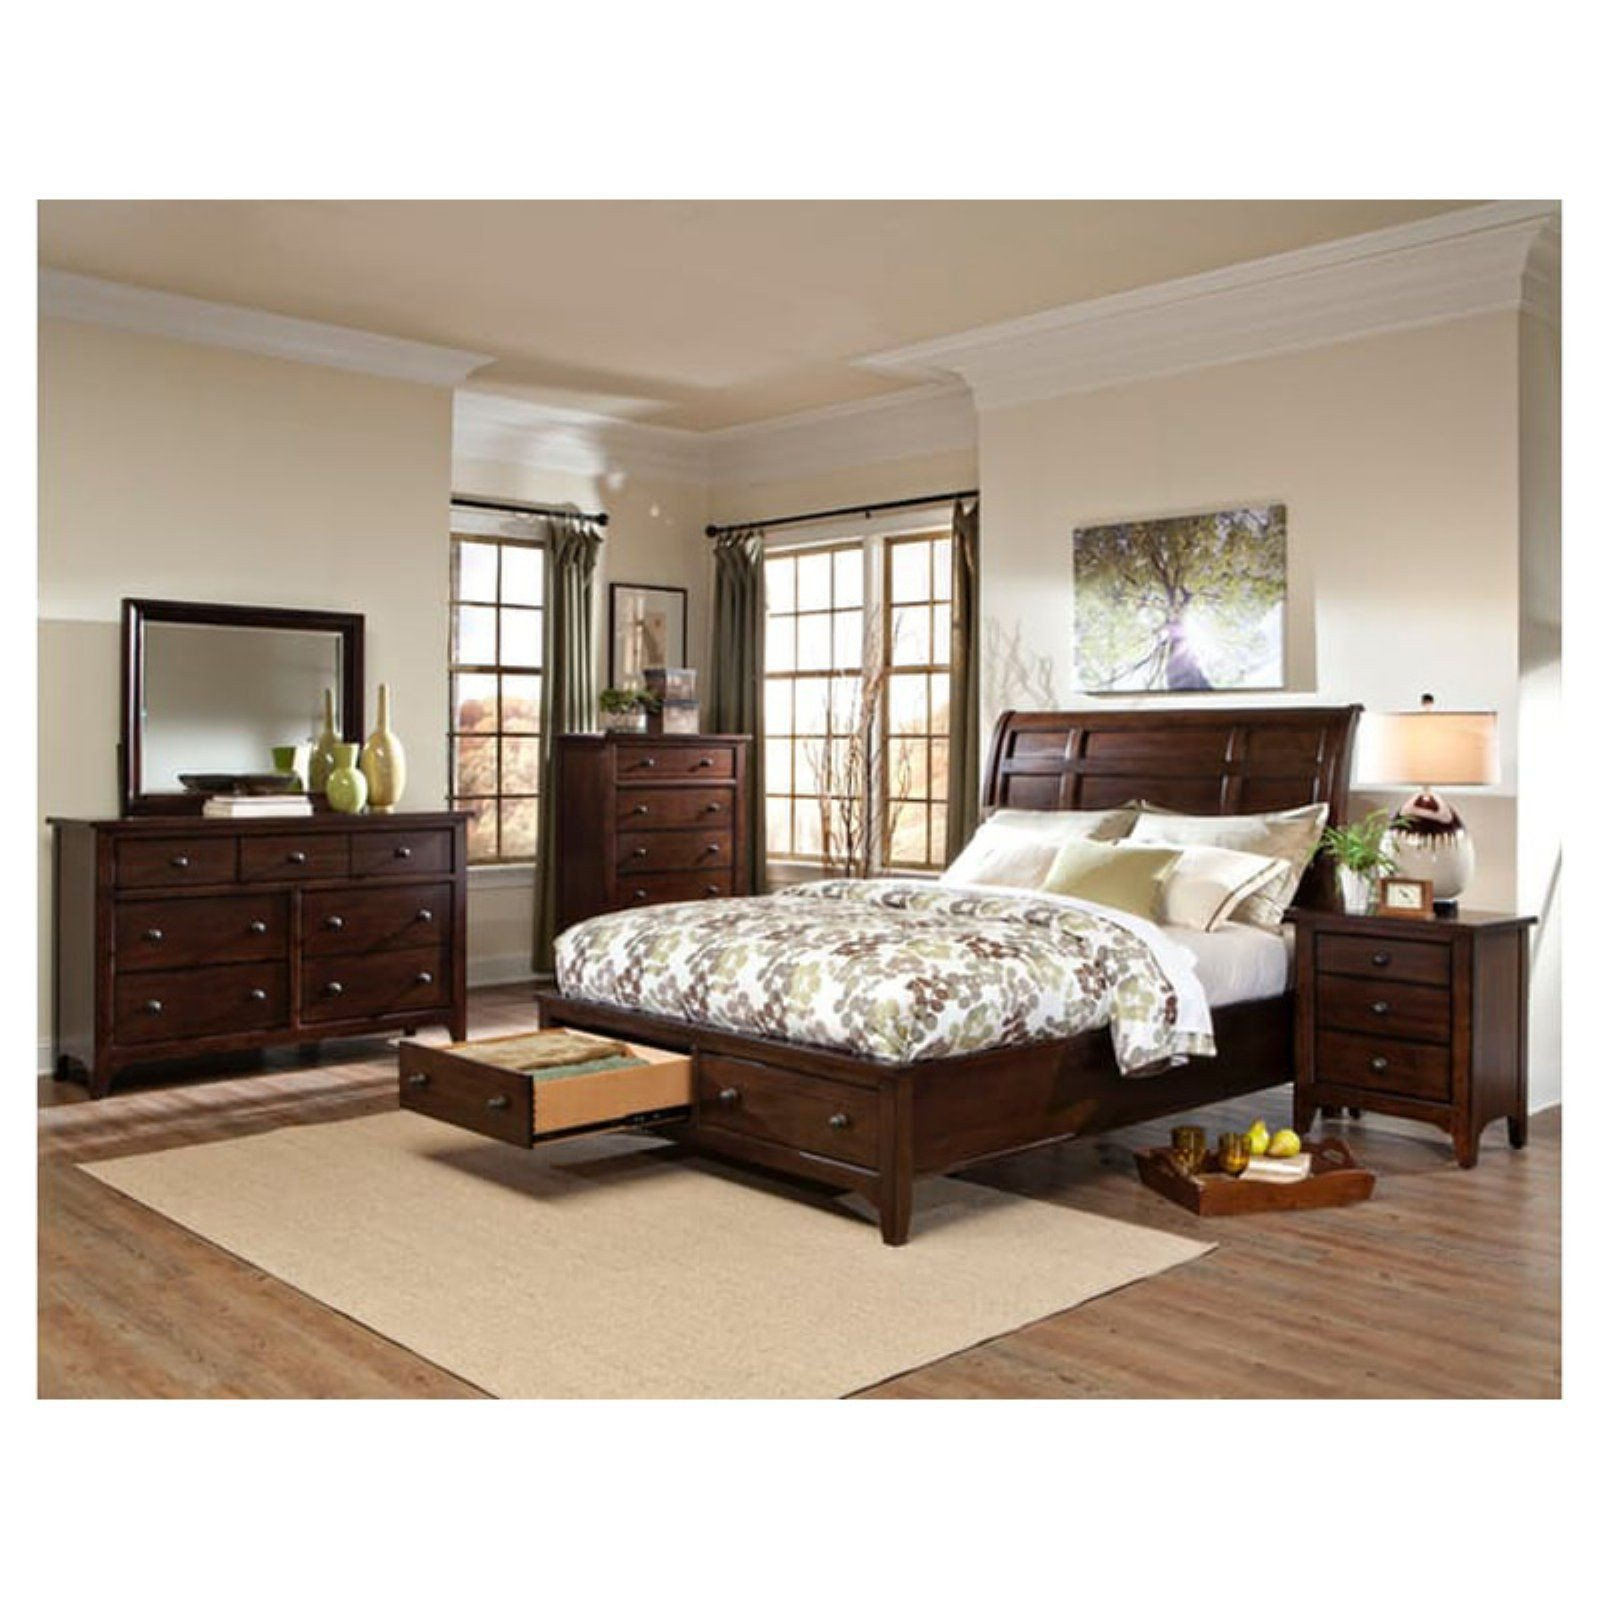 King Bedroom Set for Sale Beautiful Imagio Home Jackson Sleigh Storage Bed Size California